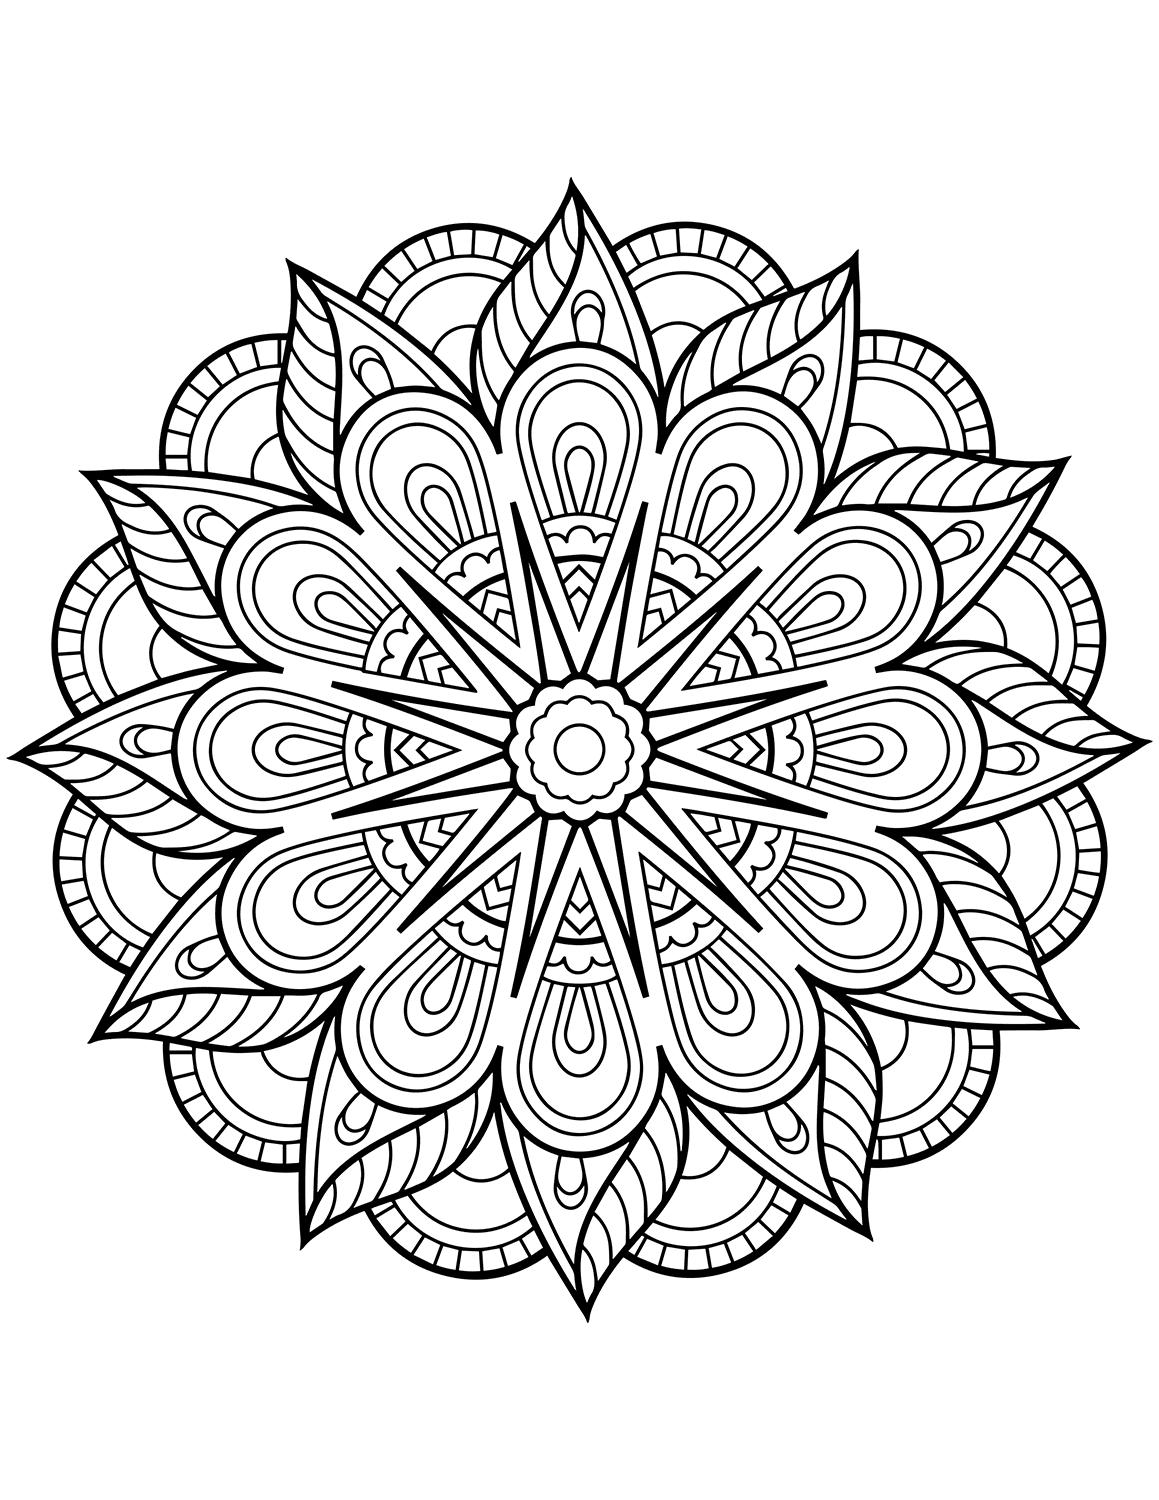 free printable coloring pages mandala designs | Flower Mandala Coloring Pages - Best Coloring Pages For Kids